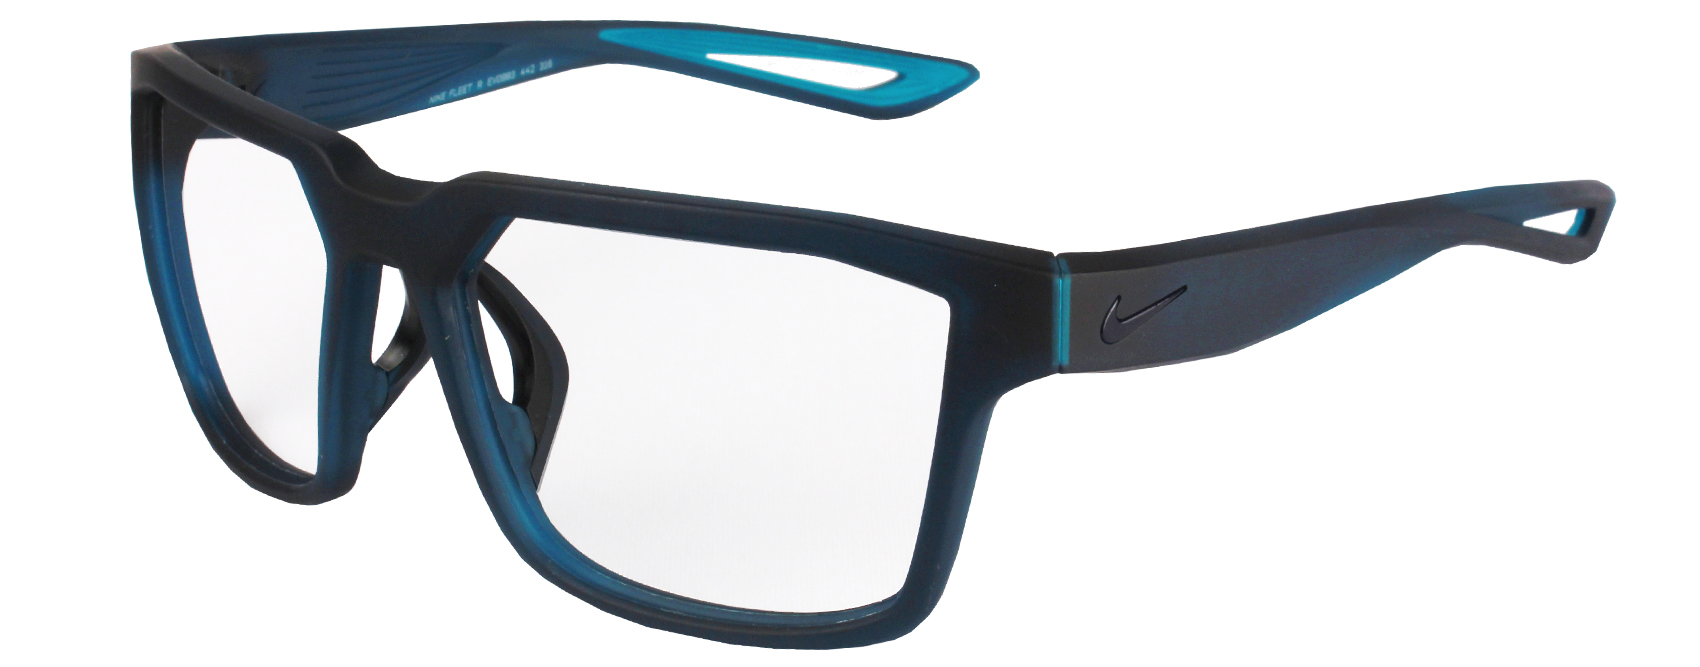 Nike Fleet Lead Glasses